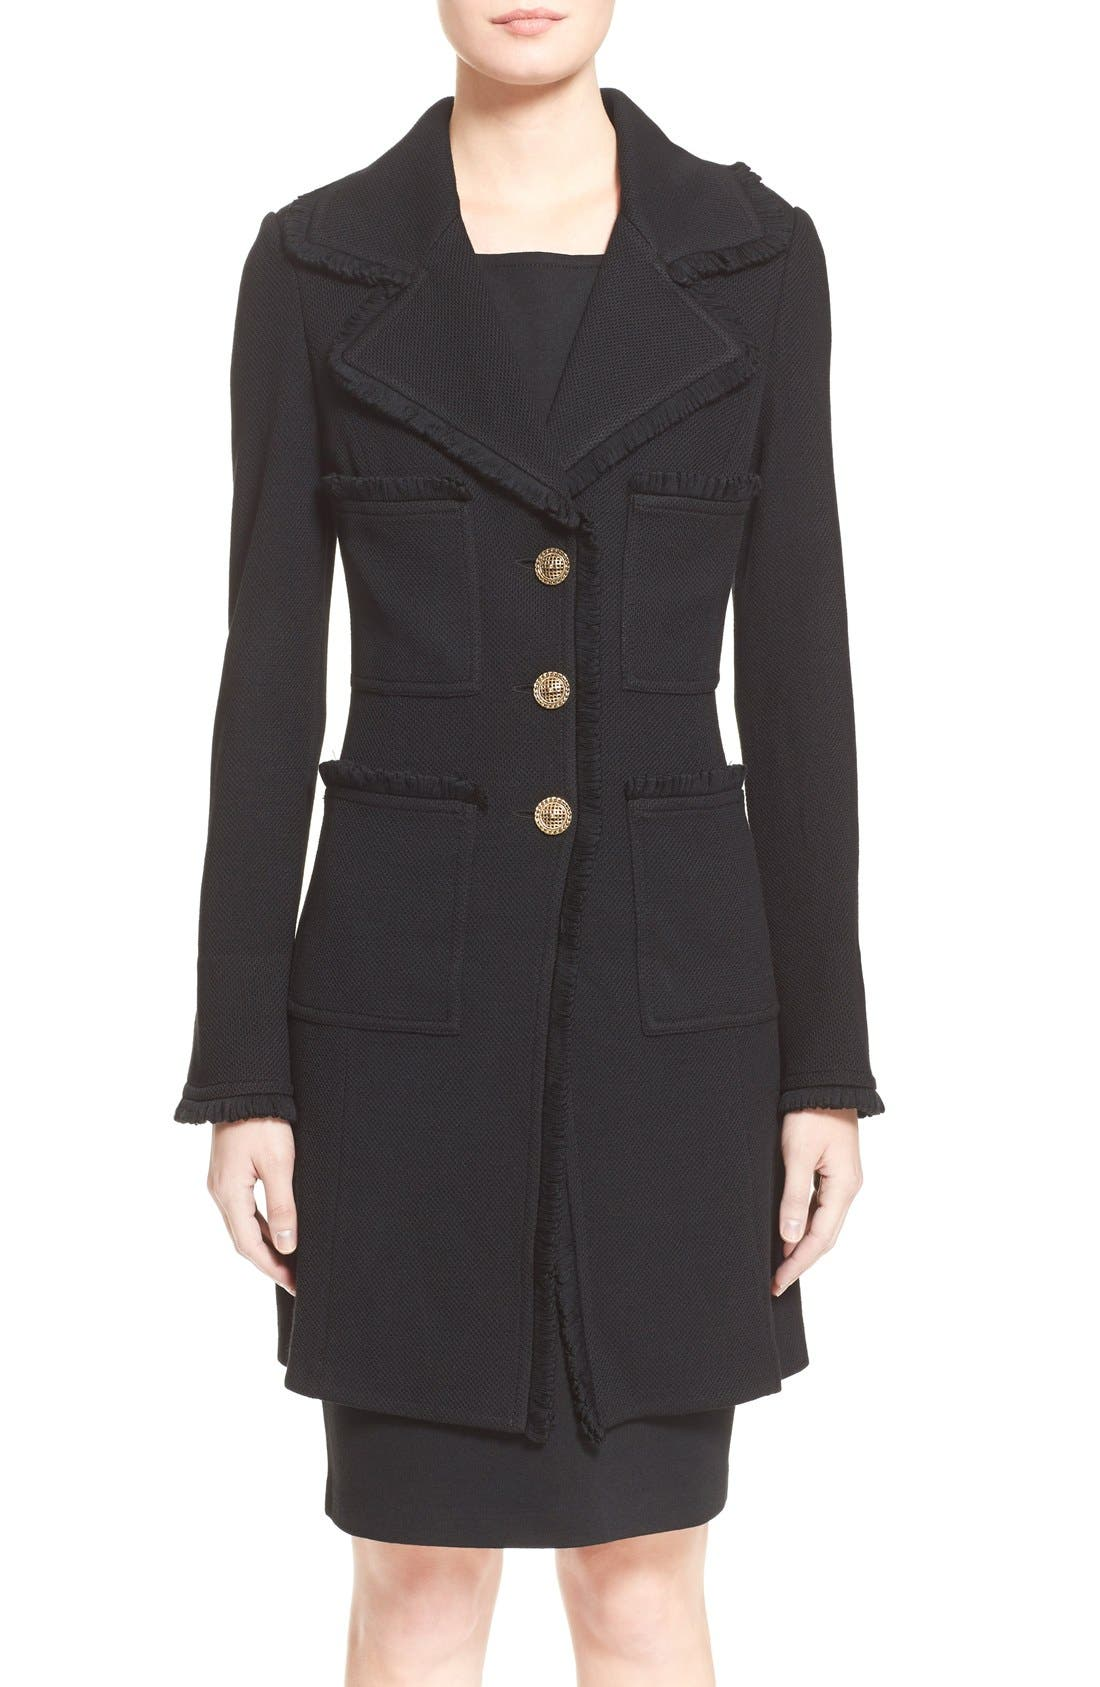 Main Image - St. John Collection Fringe Trim Milano Piqué Knit Coat